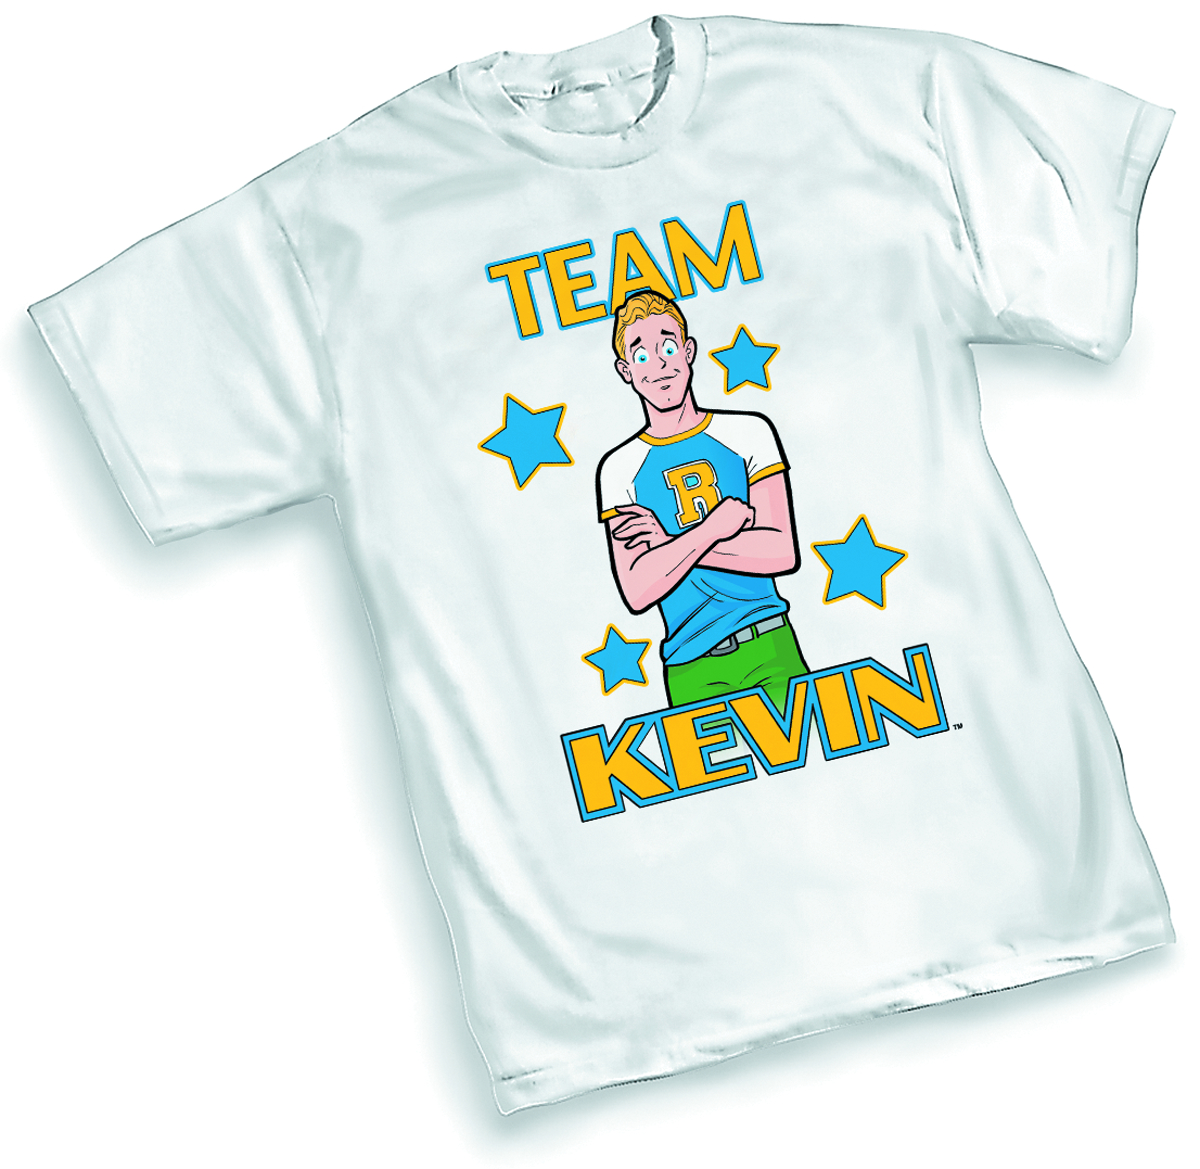 ARCHIE TEAM KEVIN T/S LG